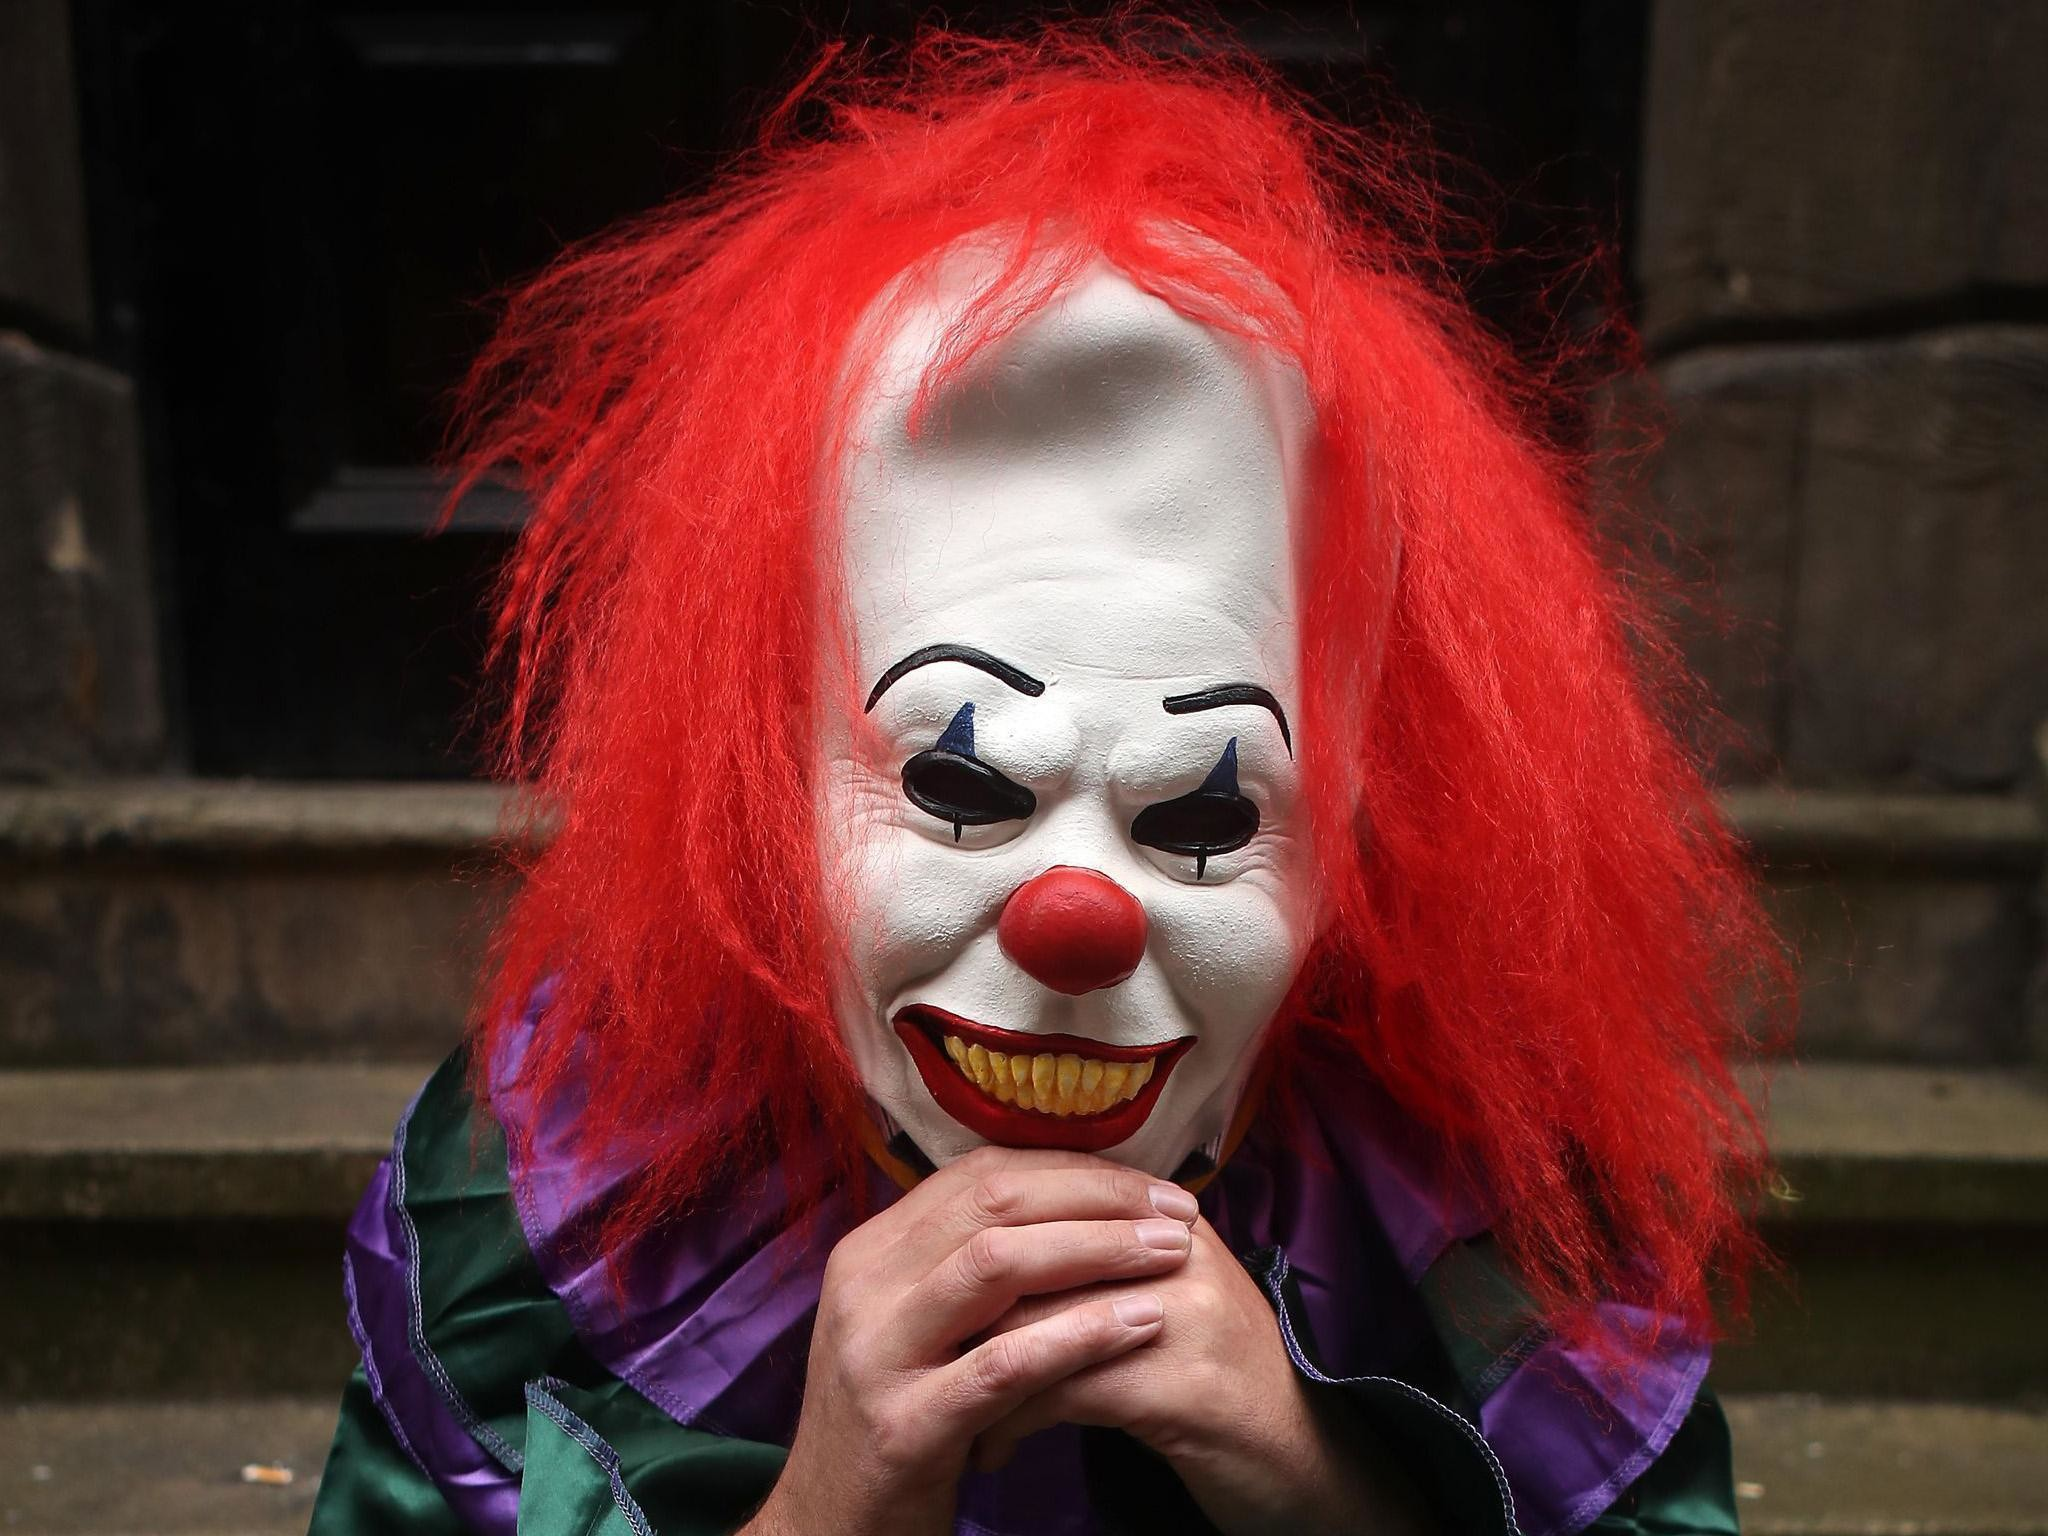 'Killer clown hunting' event with cash prizes to be held on Halloween in  Copenhagen | The Independent